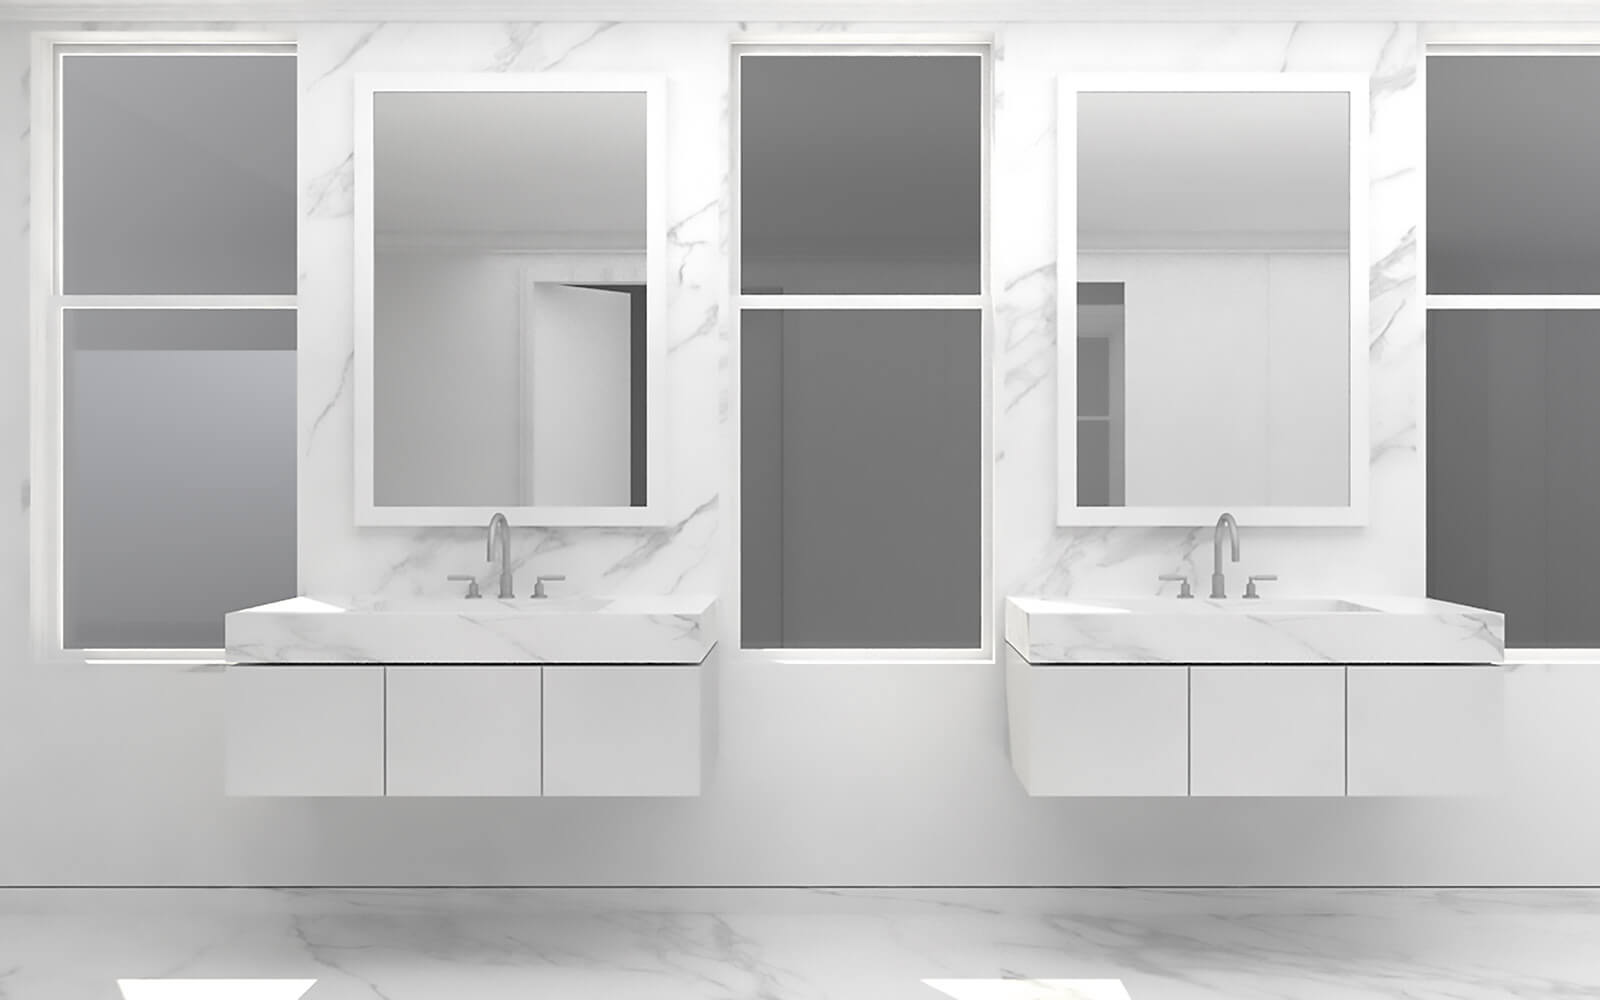 studio vara residential broadway co-op bathroom rendering